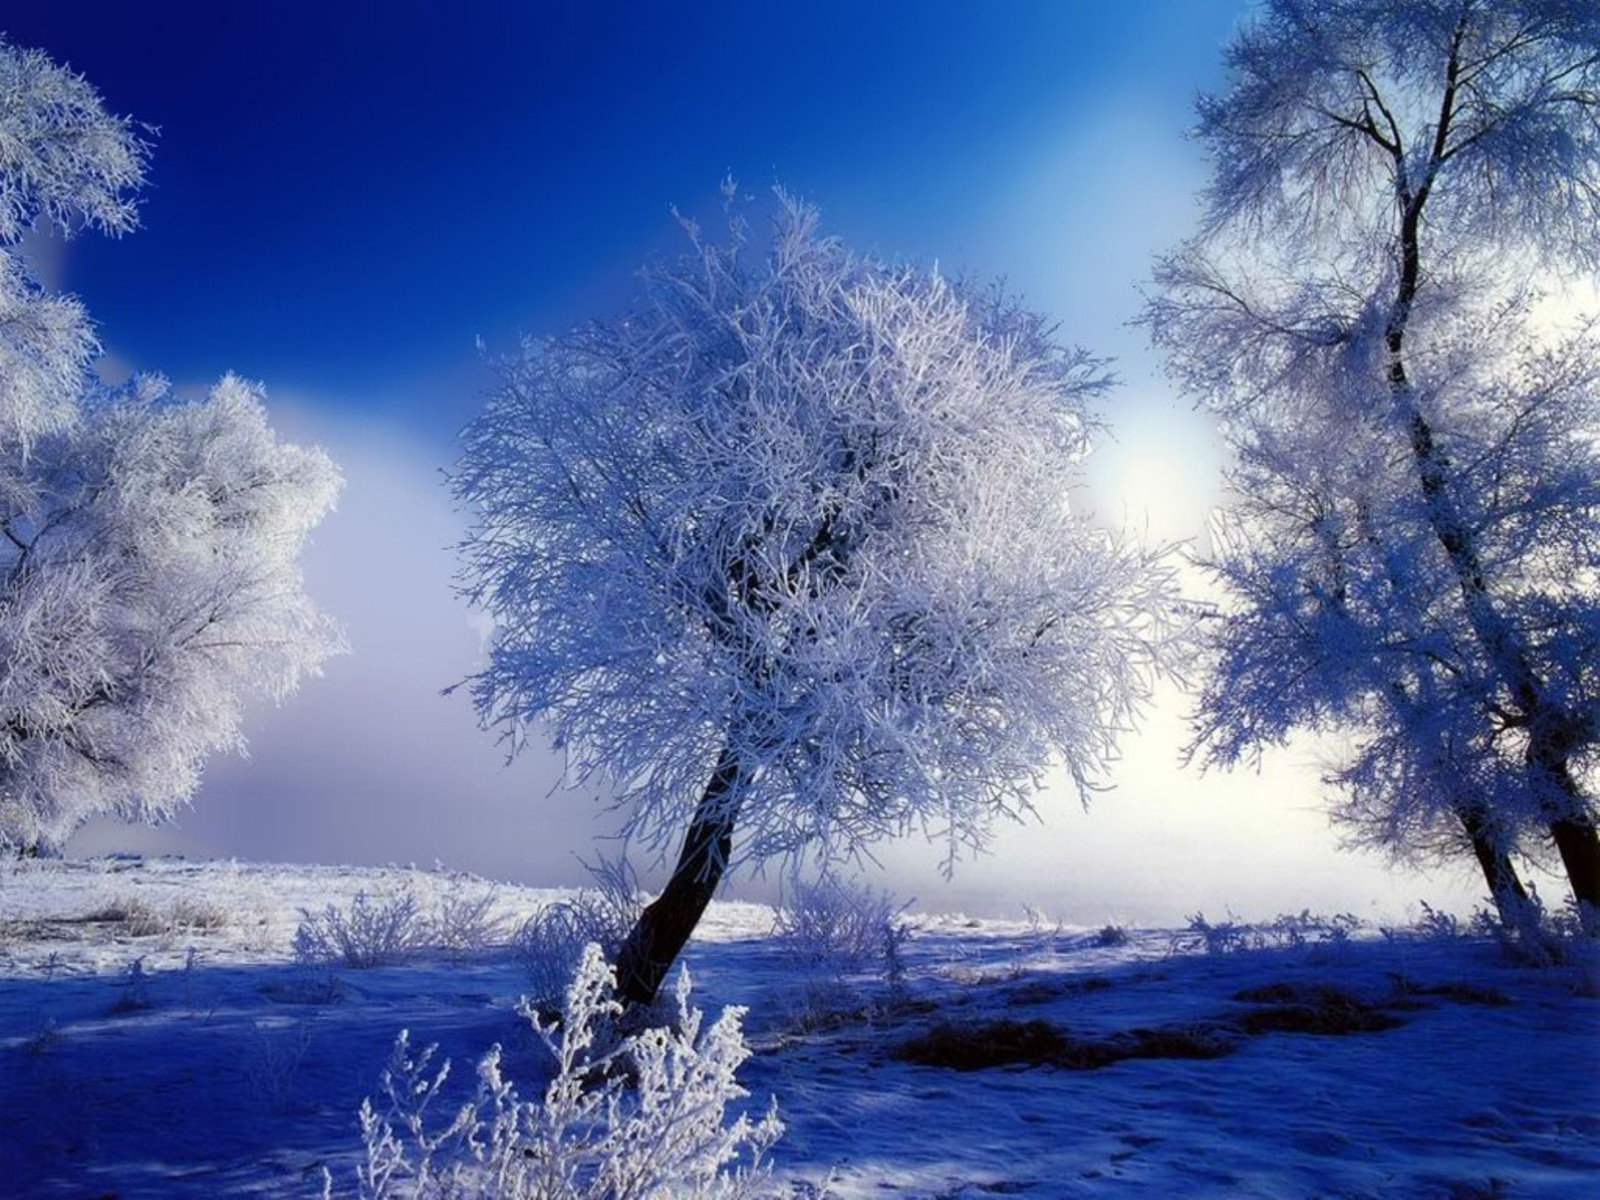 winter scenery winter scenery winter scenery winter scenery